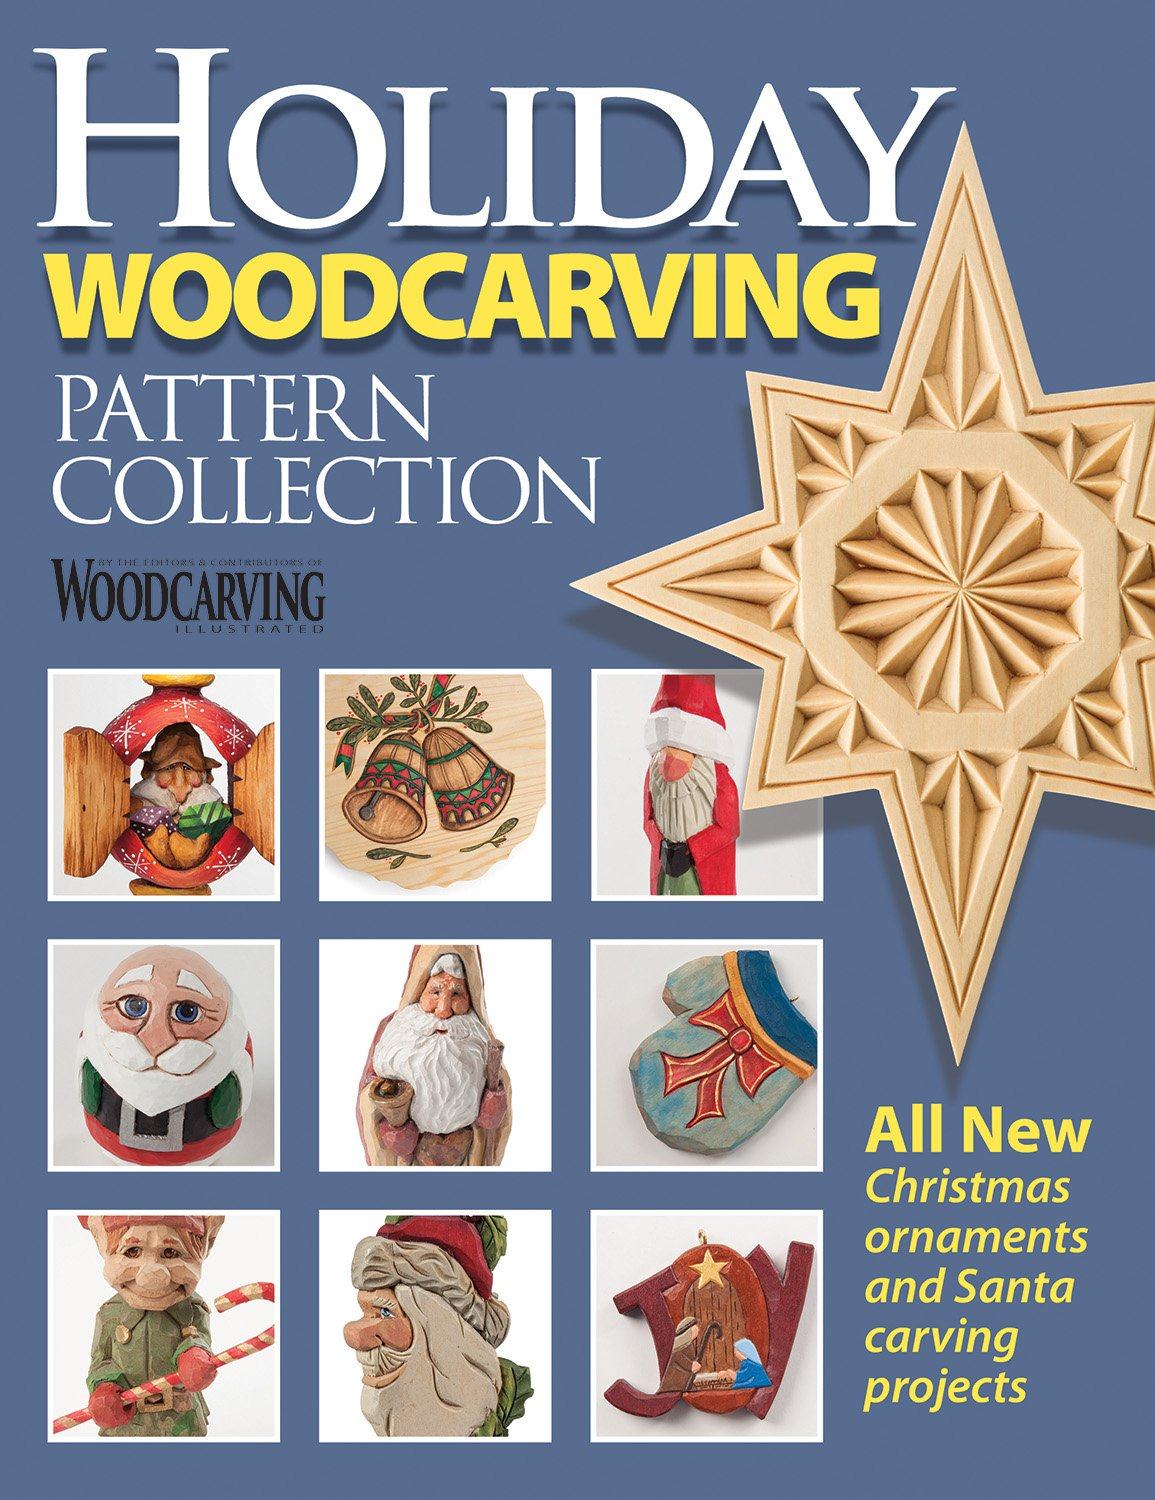 Holiday woodcarving pattern collection woodcarving illustrated